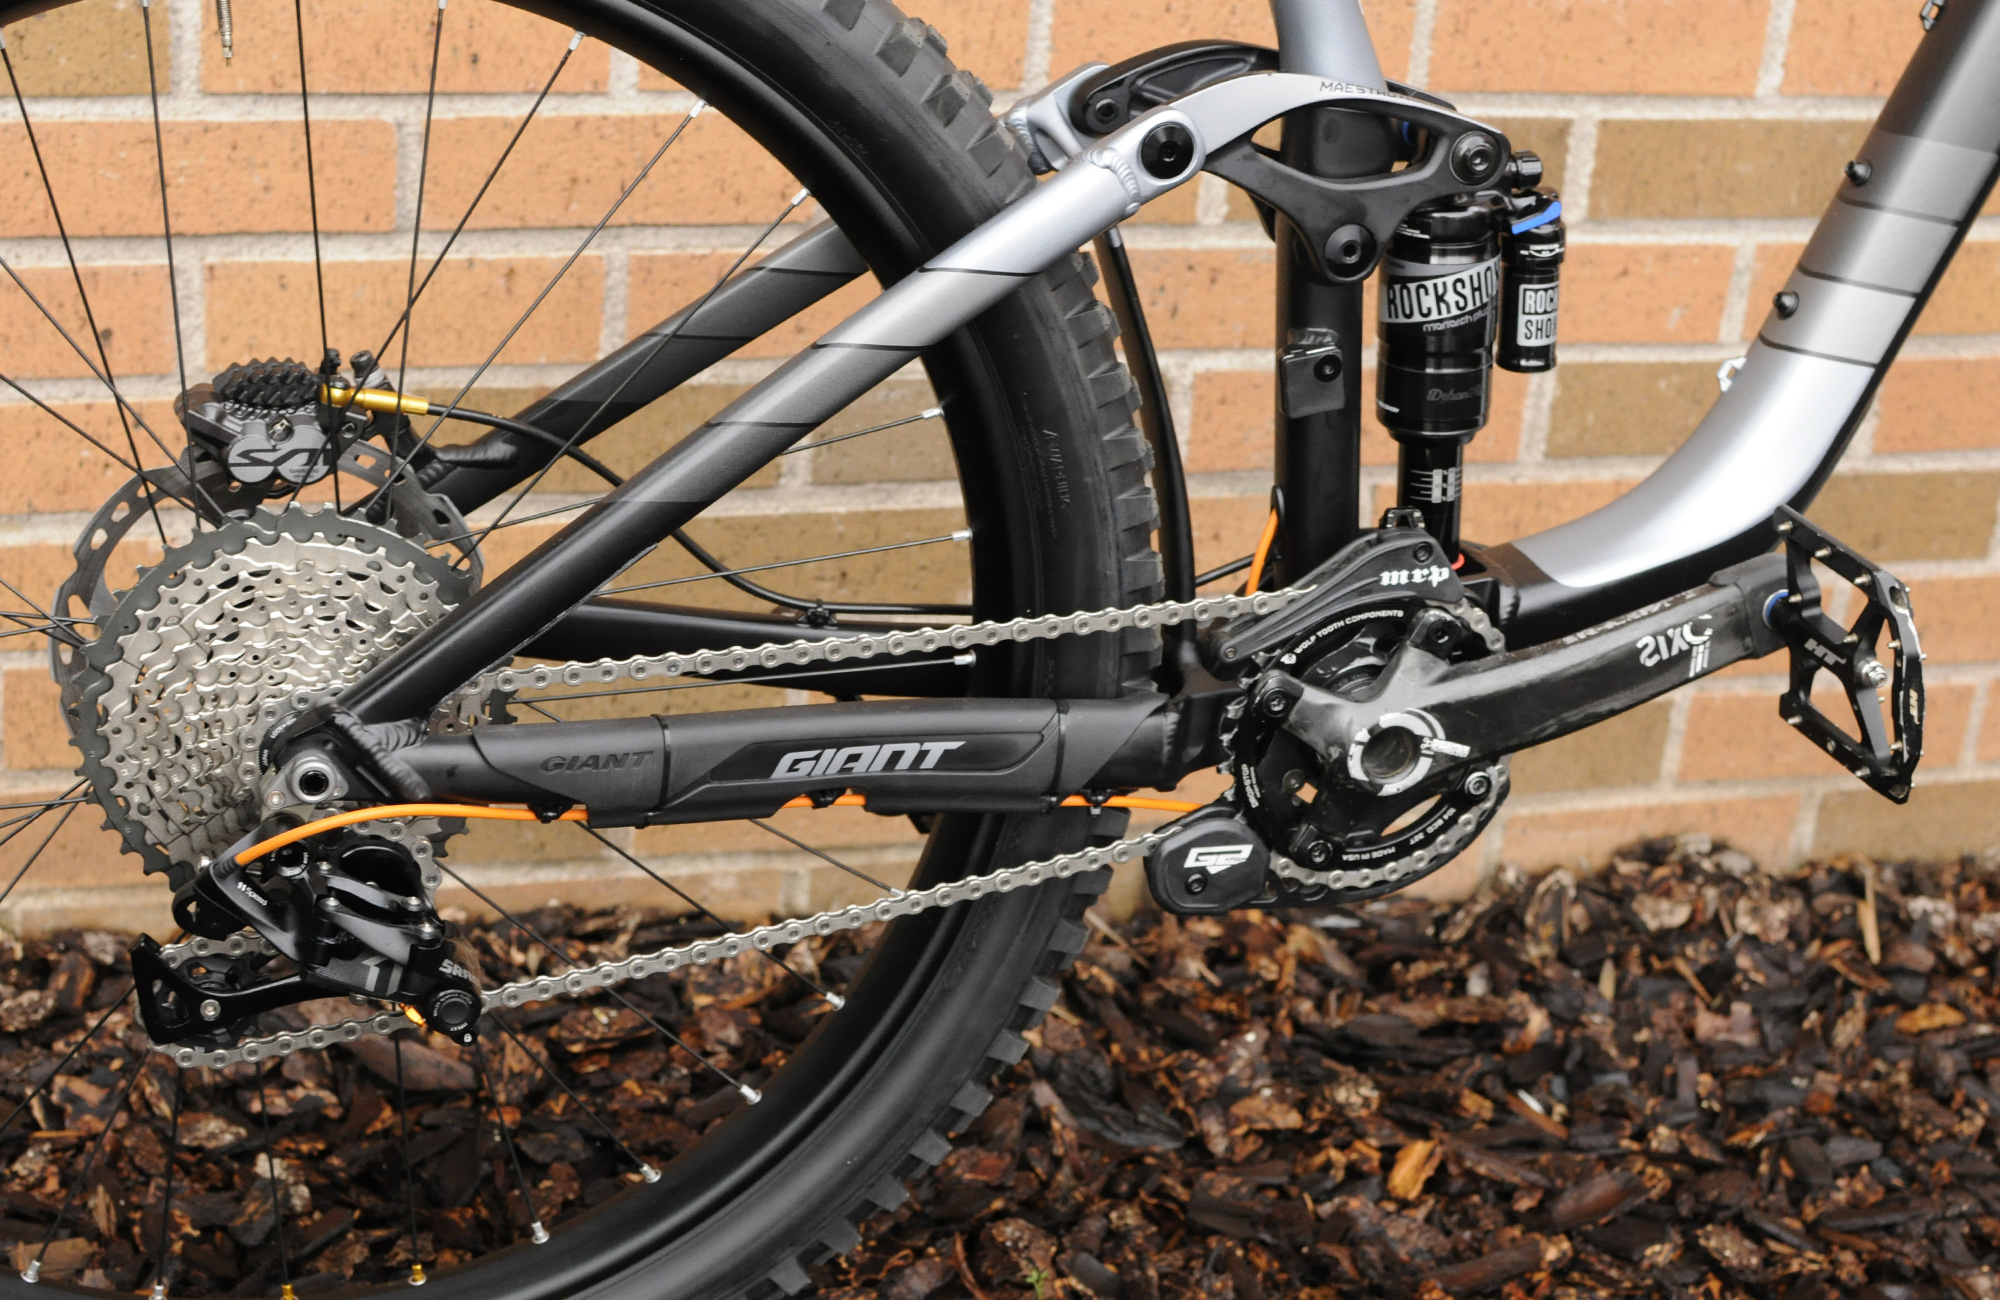 Giant Reign mountain bike dual suspension